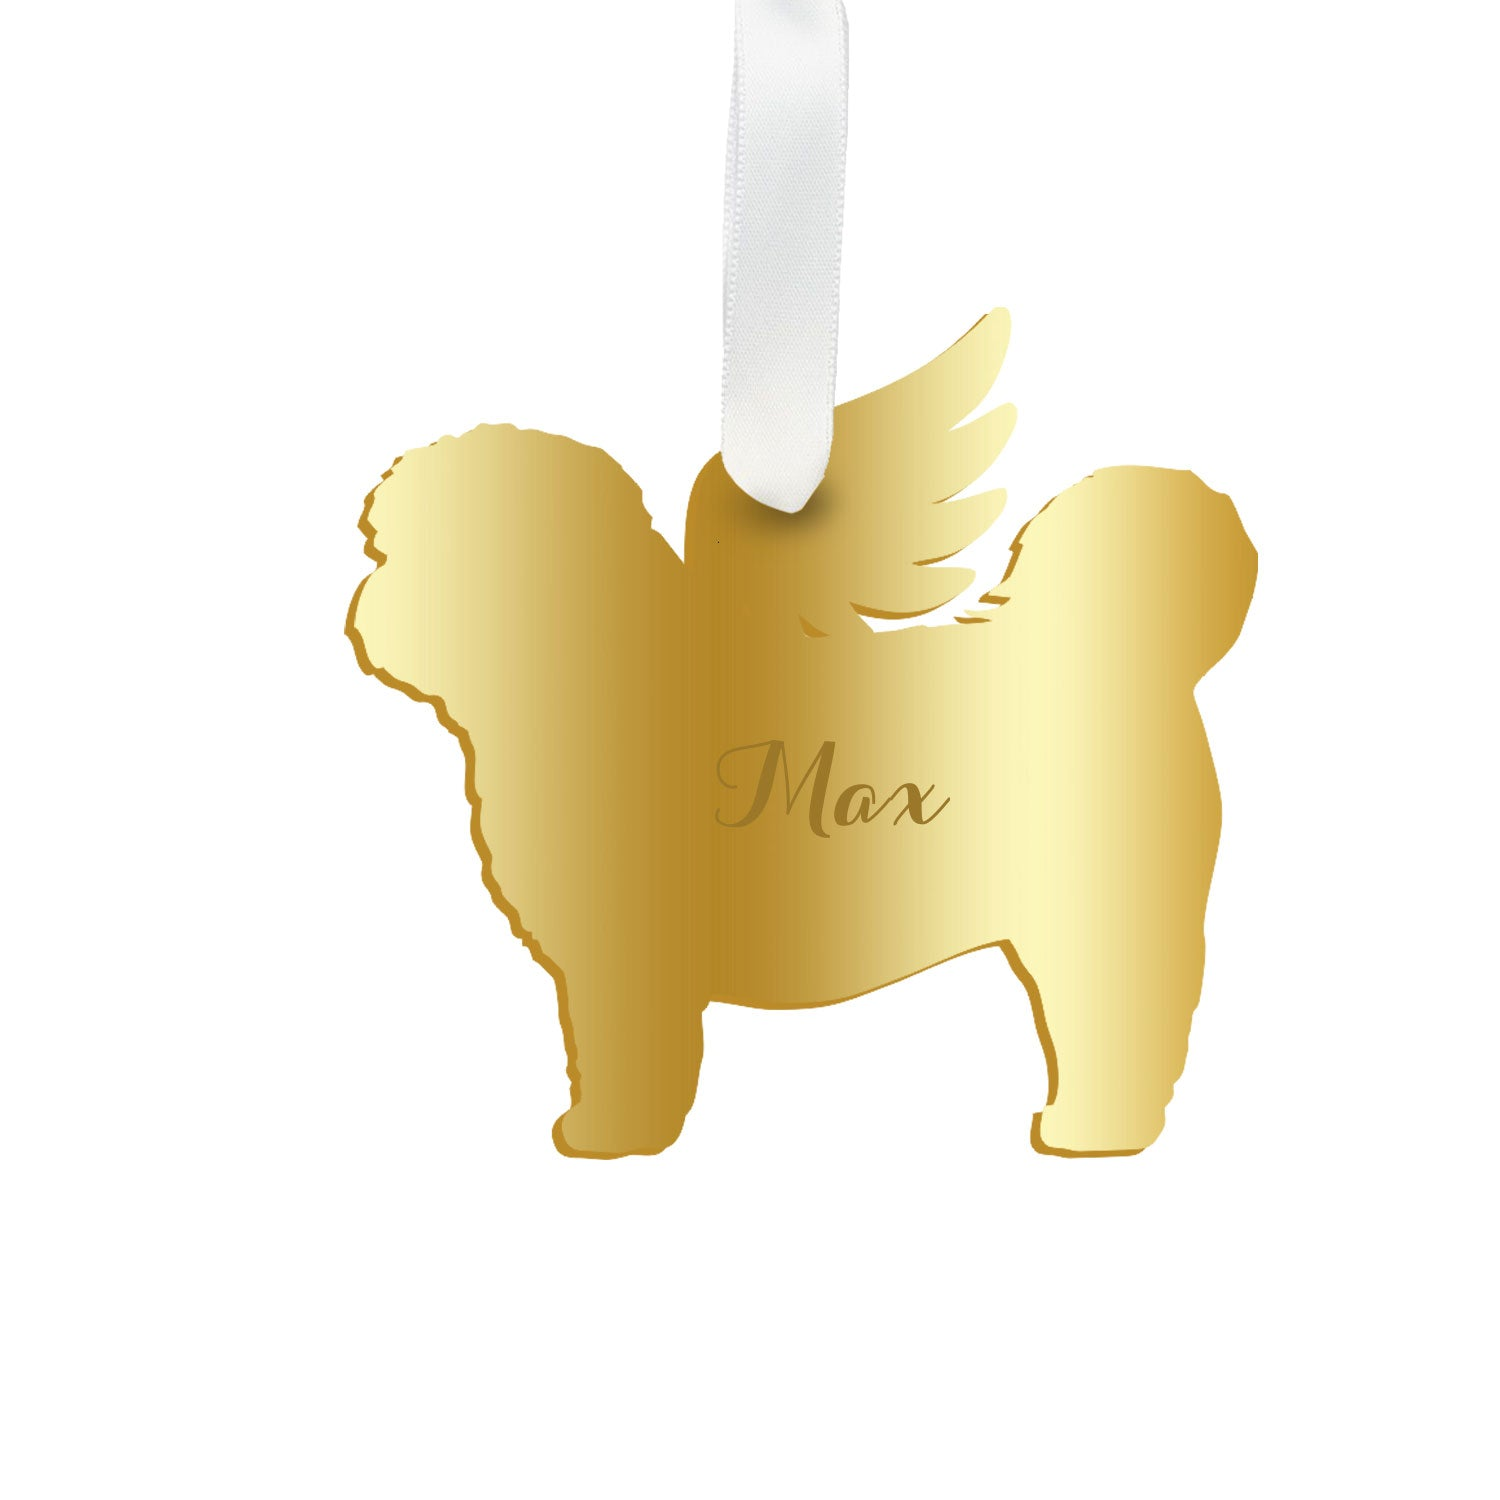 Moon and Lola - Personalized Angel Shih-Tzu Ornament with wings in gold